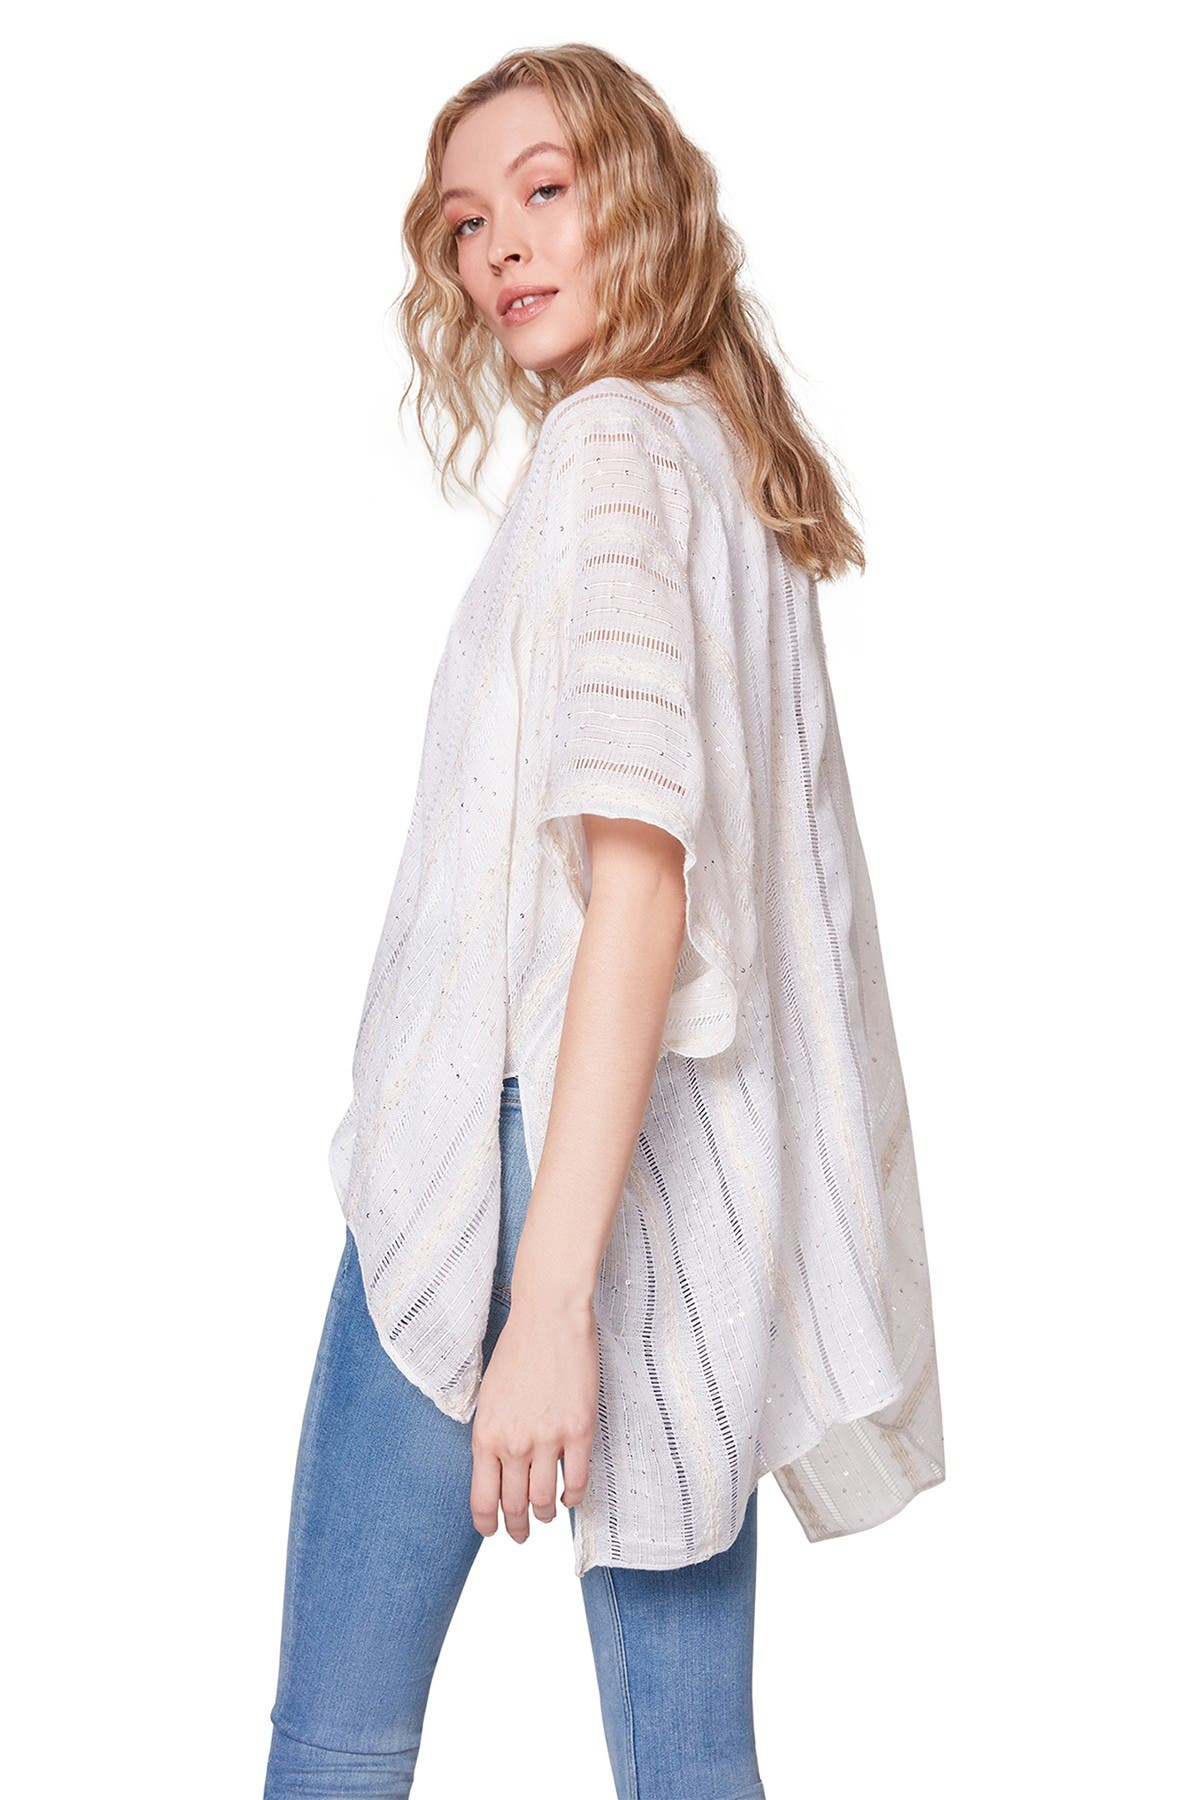 Steve Madden Accessories LADDER WOVEN COVER-UP